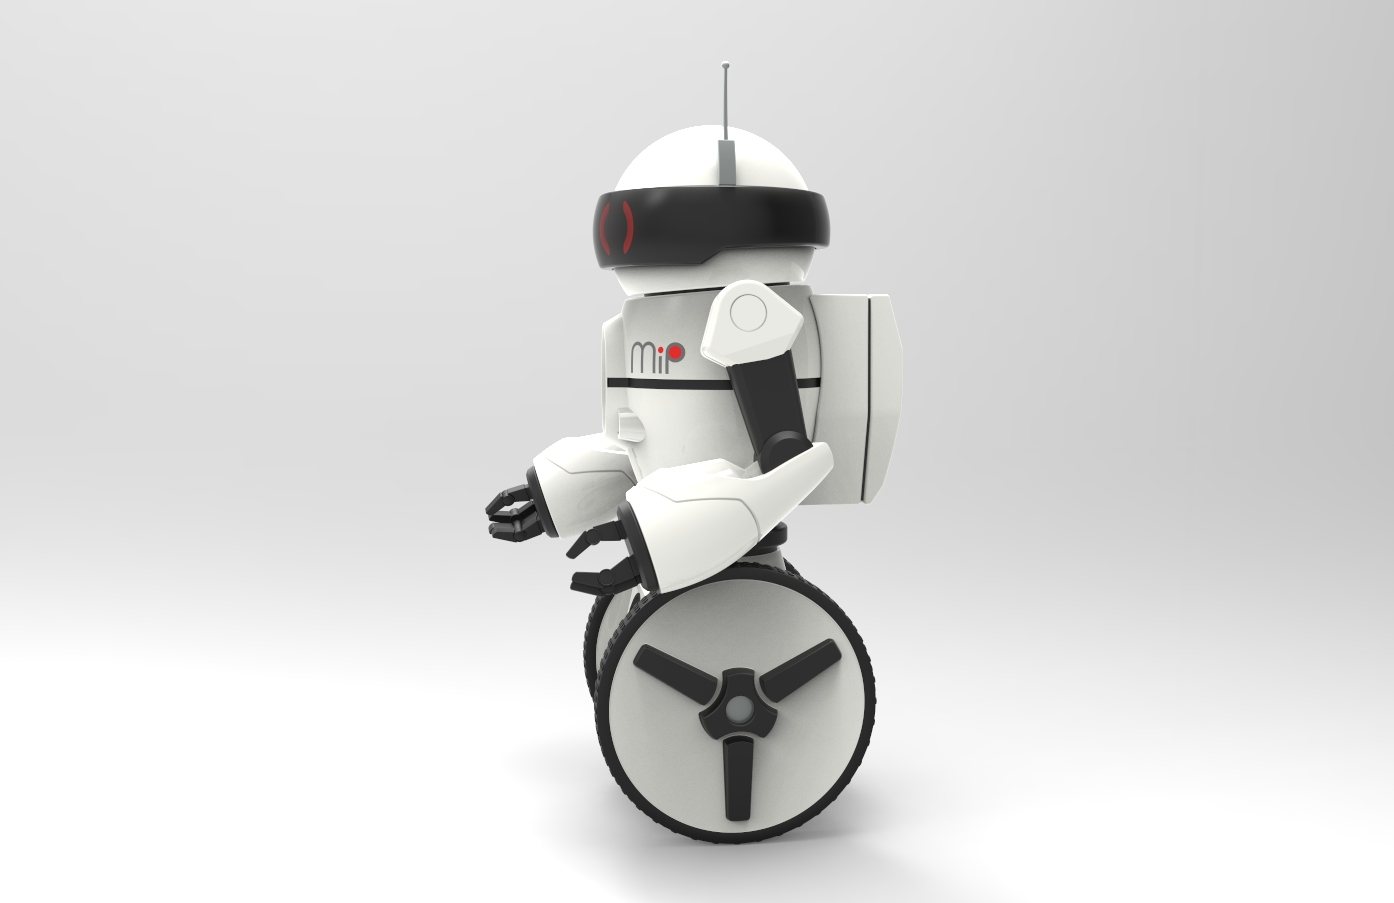 Robot Side View